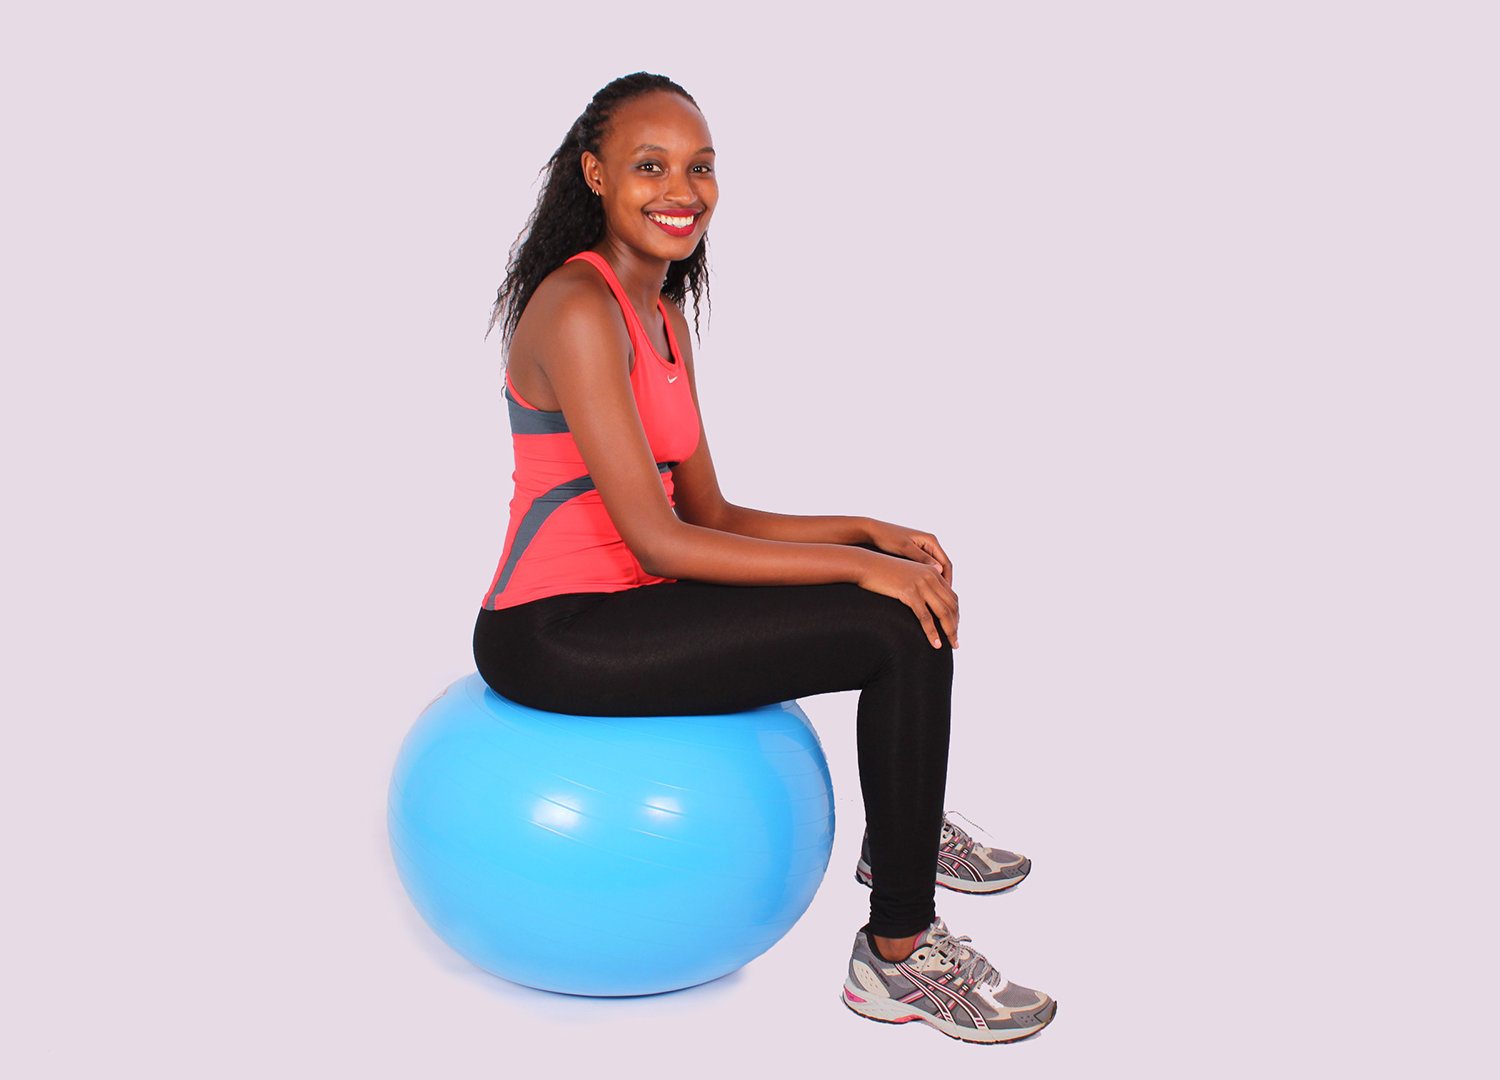 Smiling woman sitting on swiss ball ready to exercise